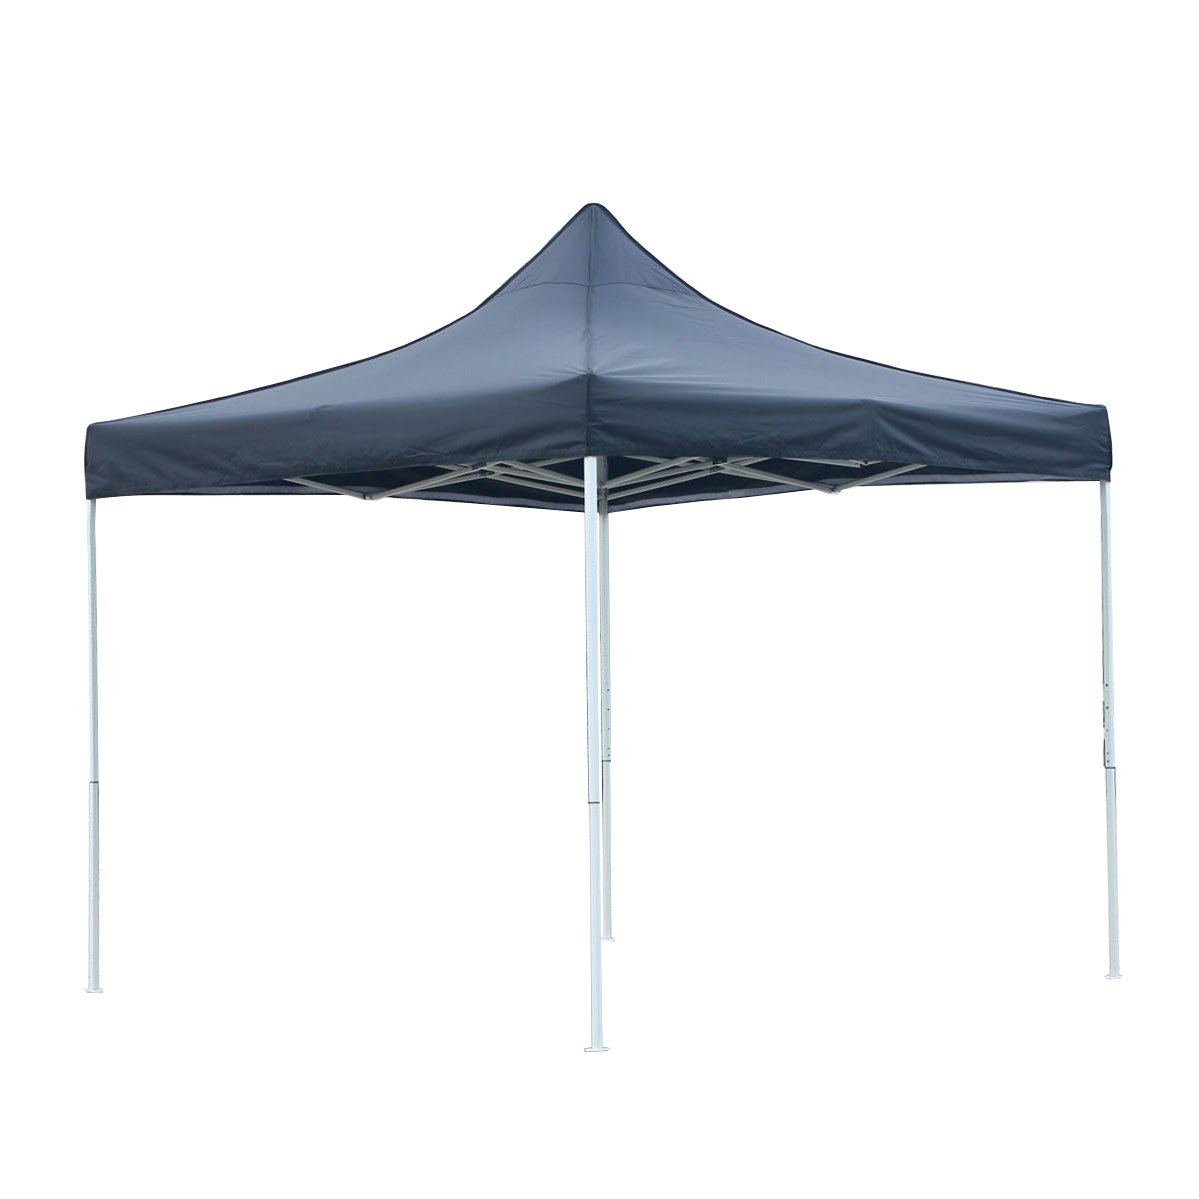 Patio Commercial Canopy White Steel Frame Heavy Duty Pop Up Party Festival Instant Shelter Canopy (10 x 10 Feet, Black)